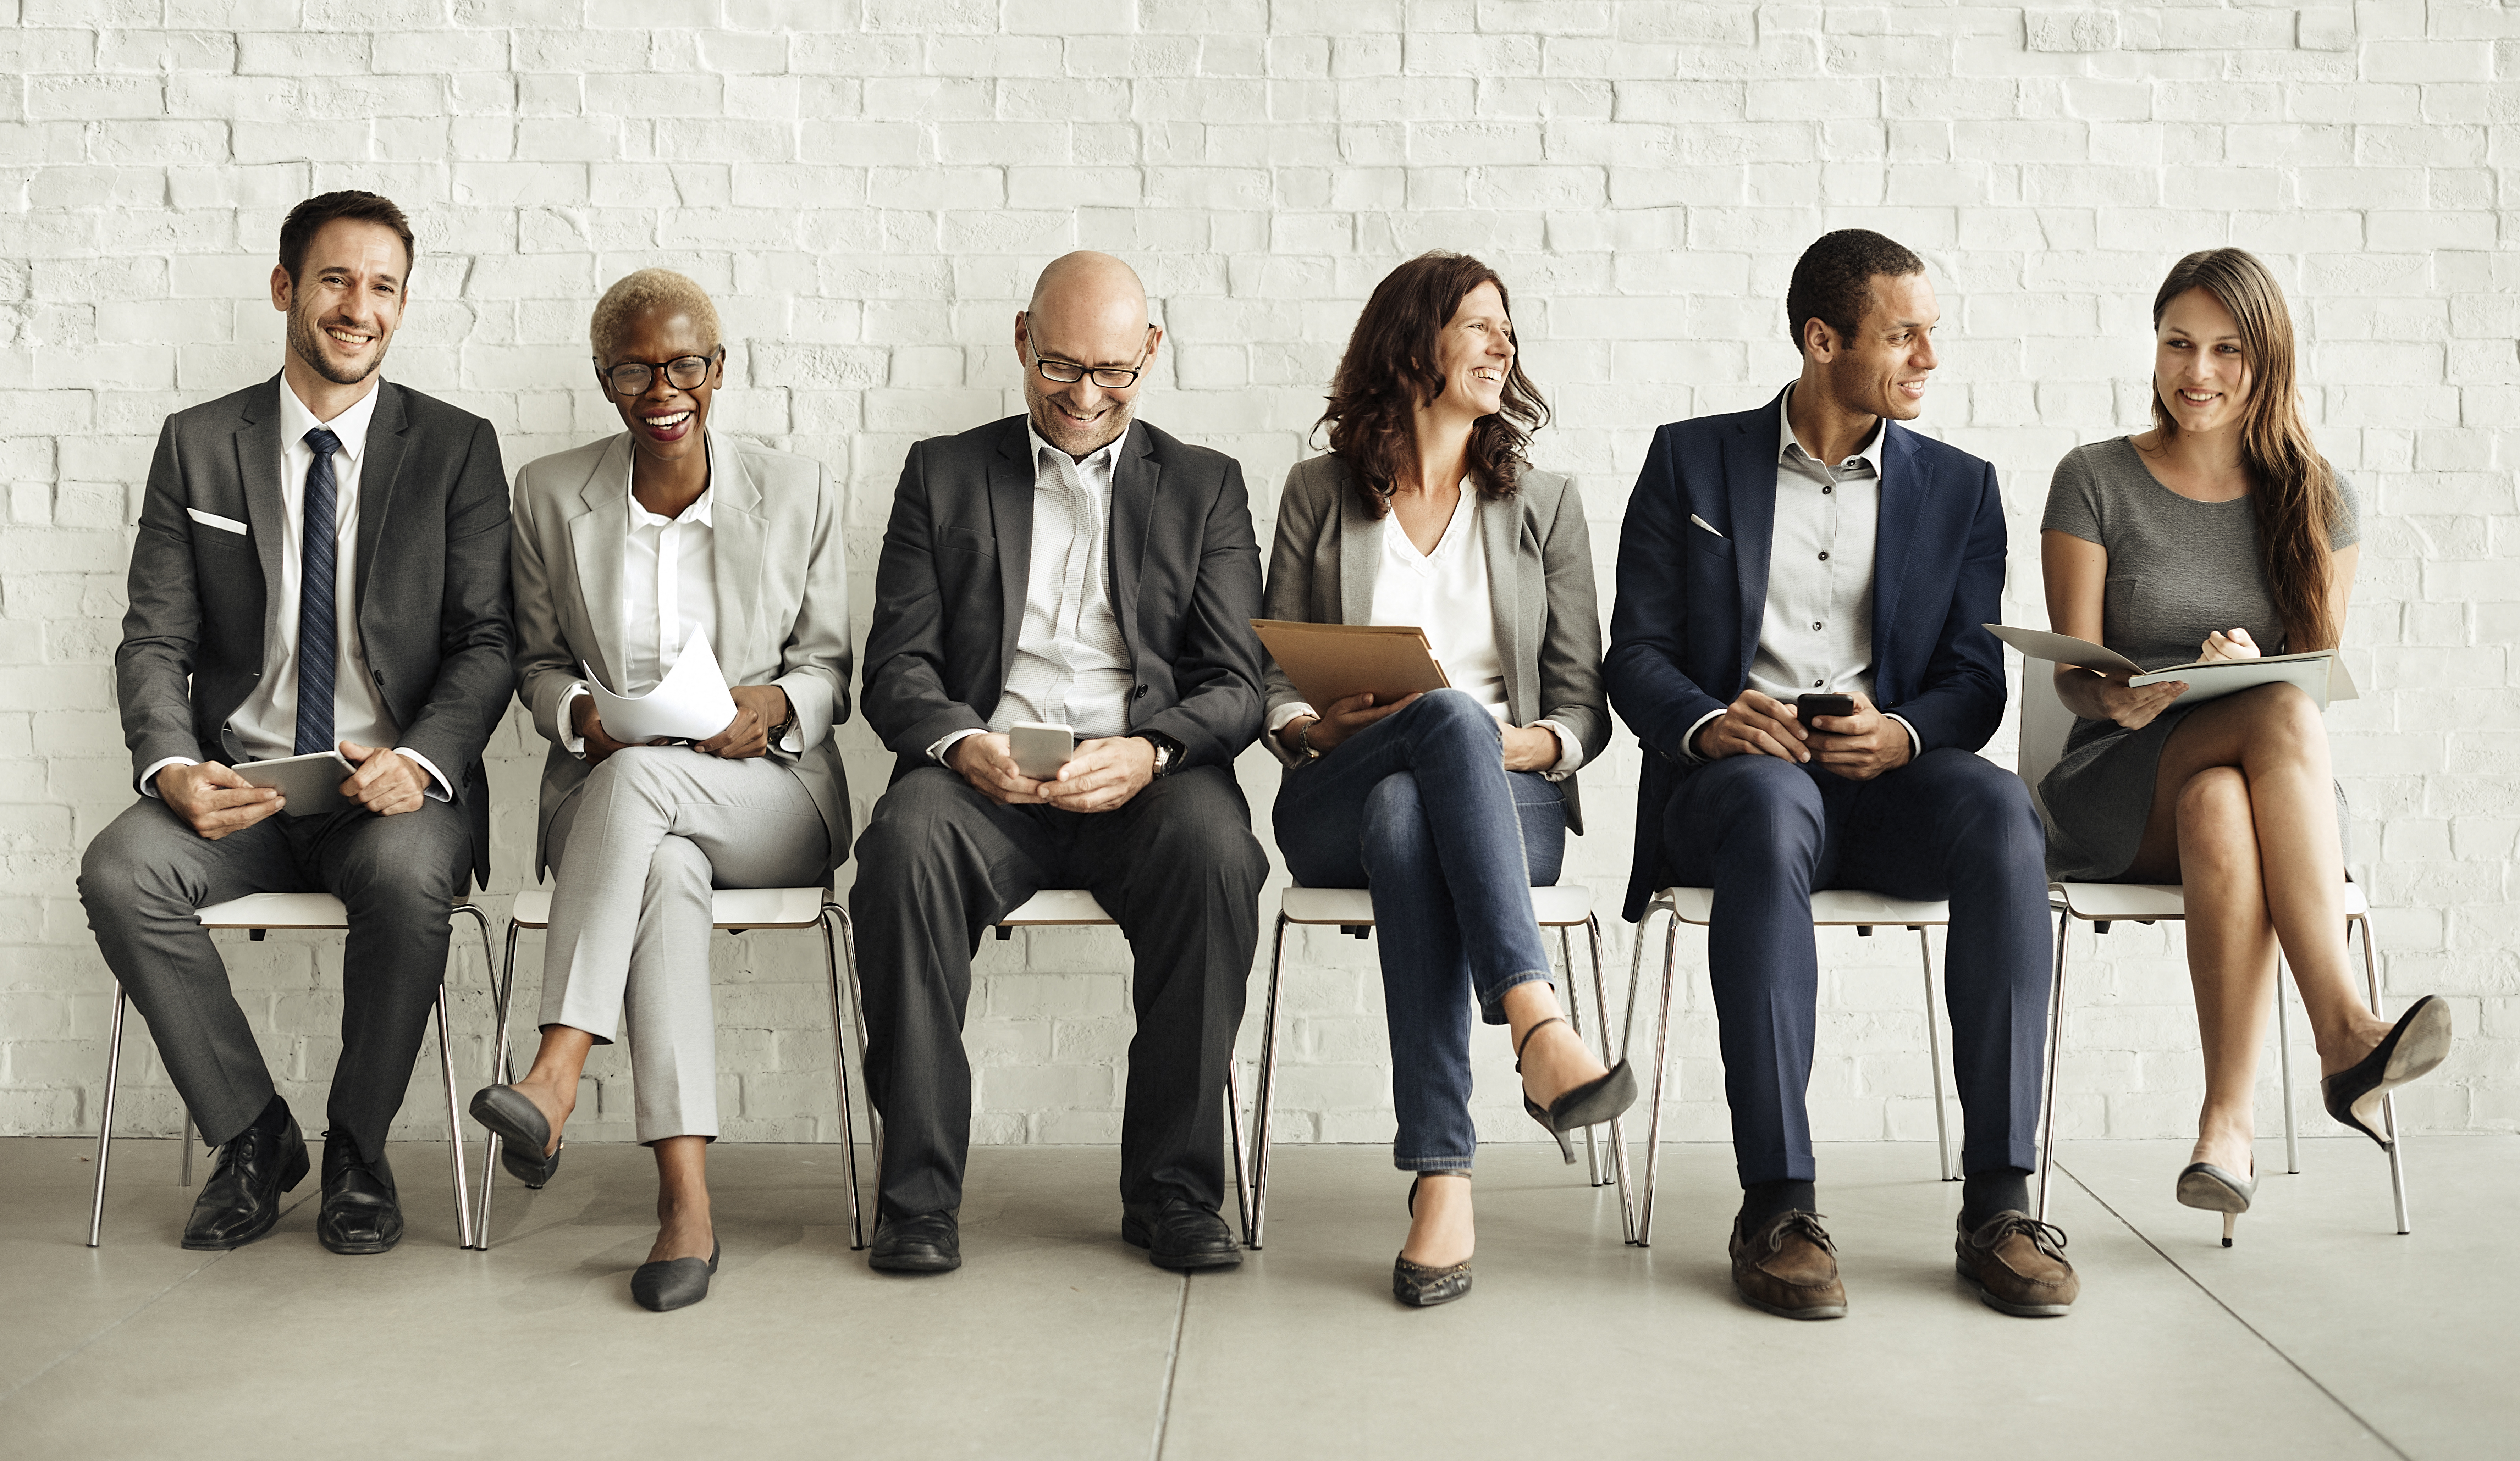 How to Build a Diverse Workplace